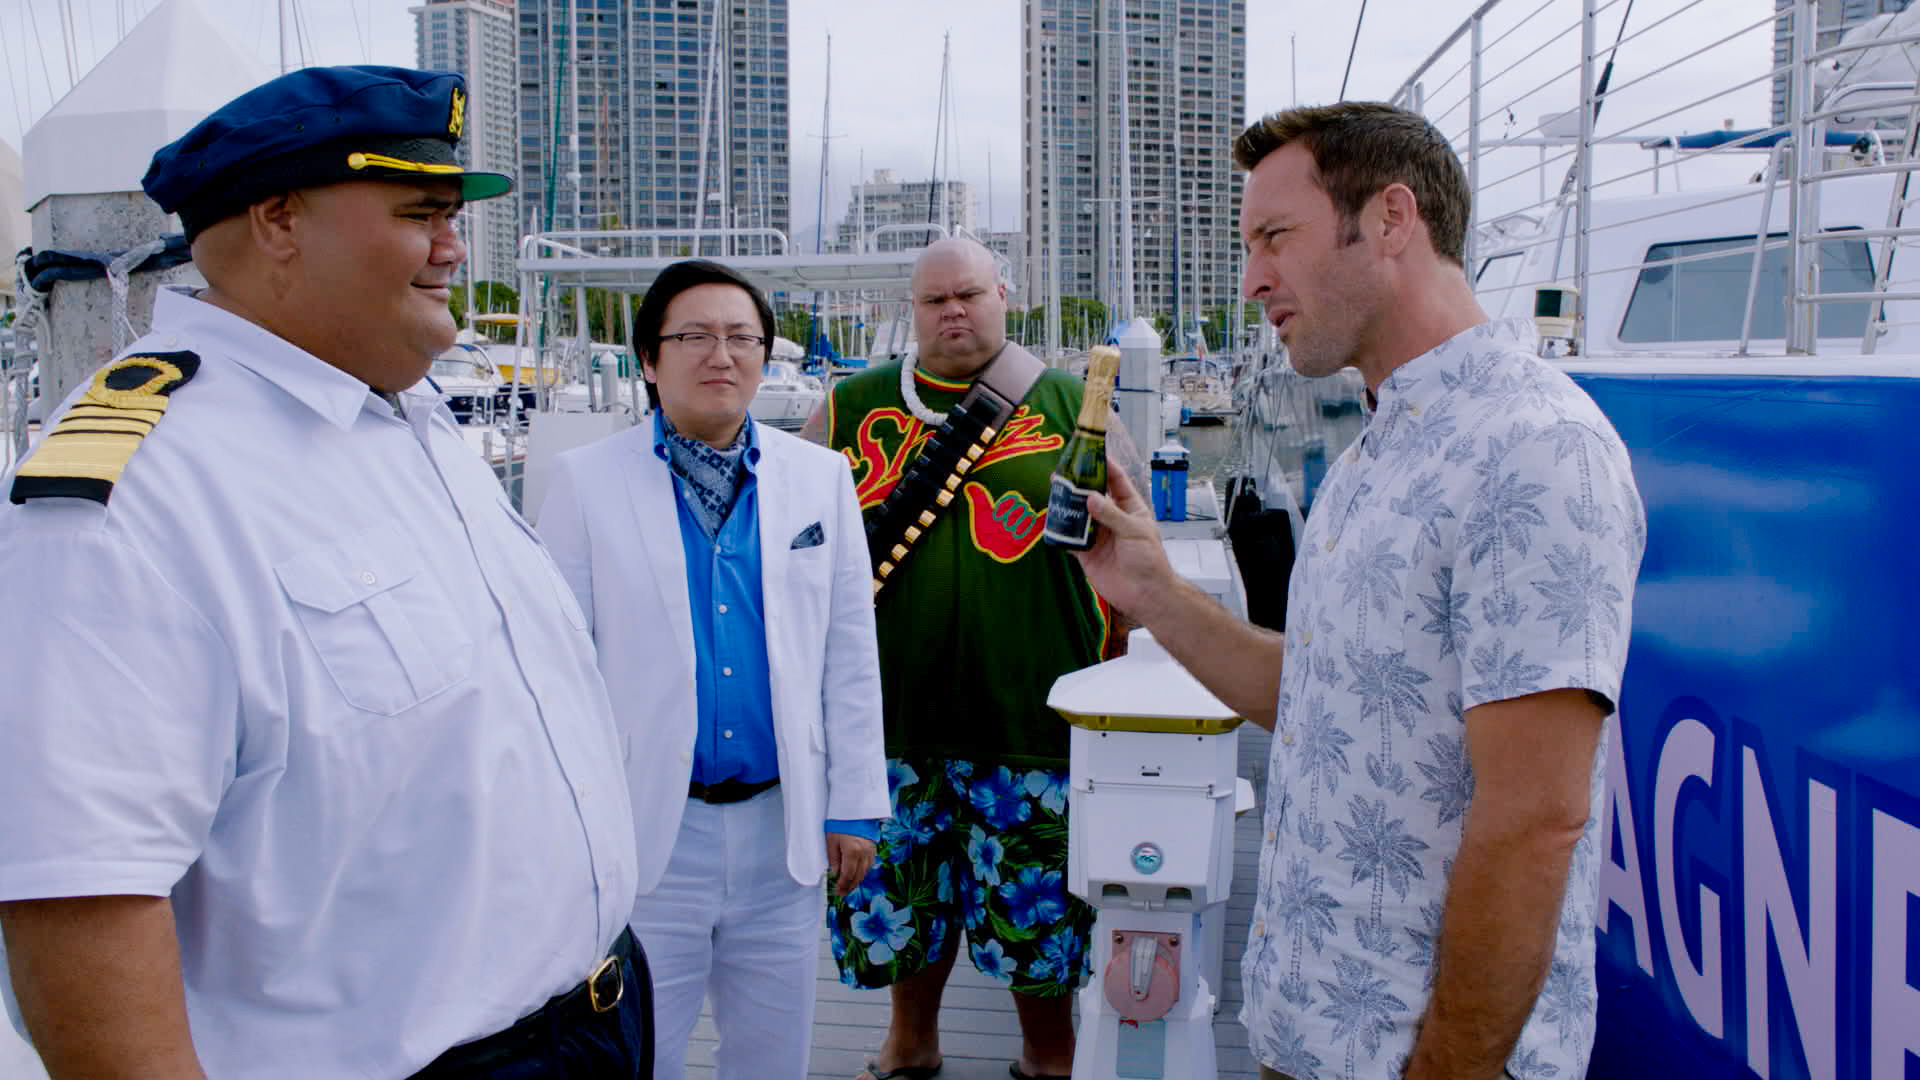 Taylor Wily as Kamekona, Masi Oka as Dr. Max Bergman, Shawn Mokuahi Garnett as Flippa/Shawn Tupuola, and Alex O'Loughlin as Steve McGarrett